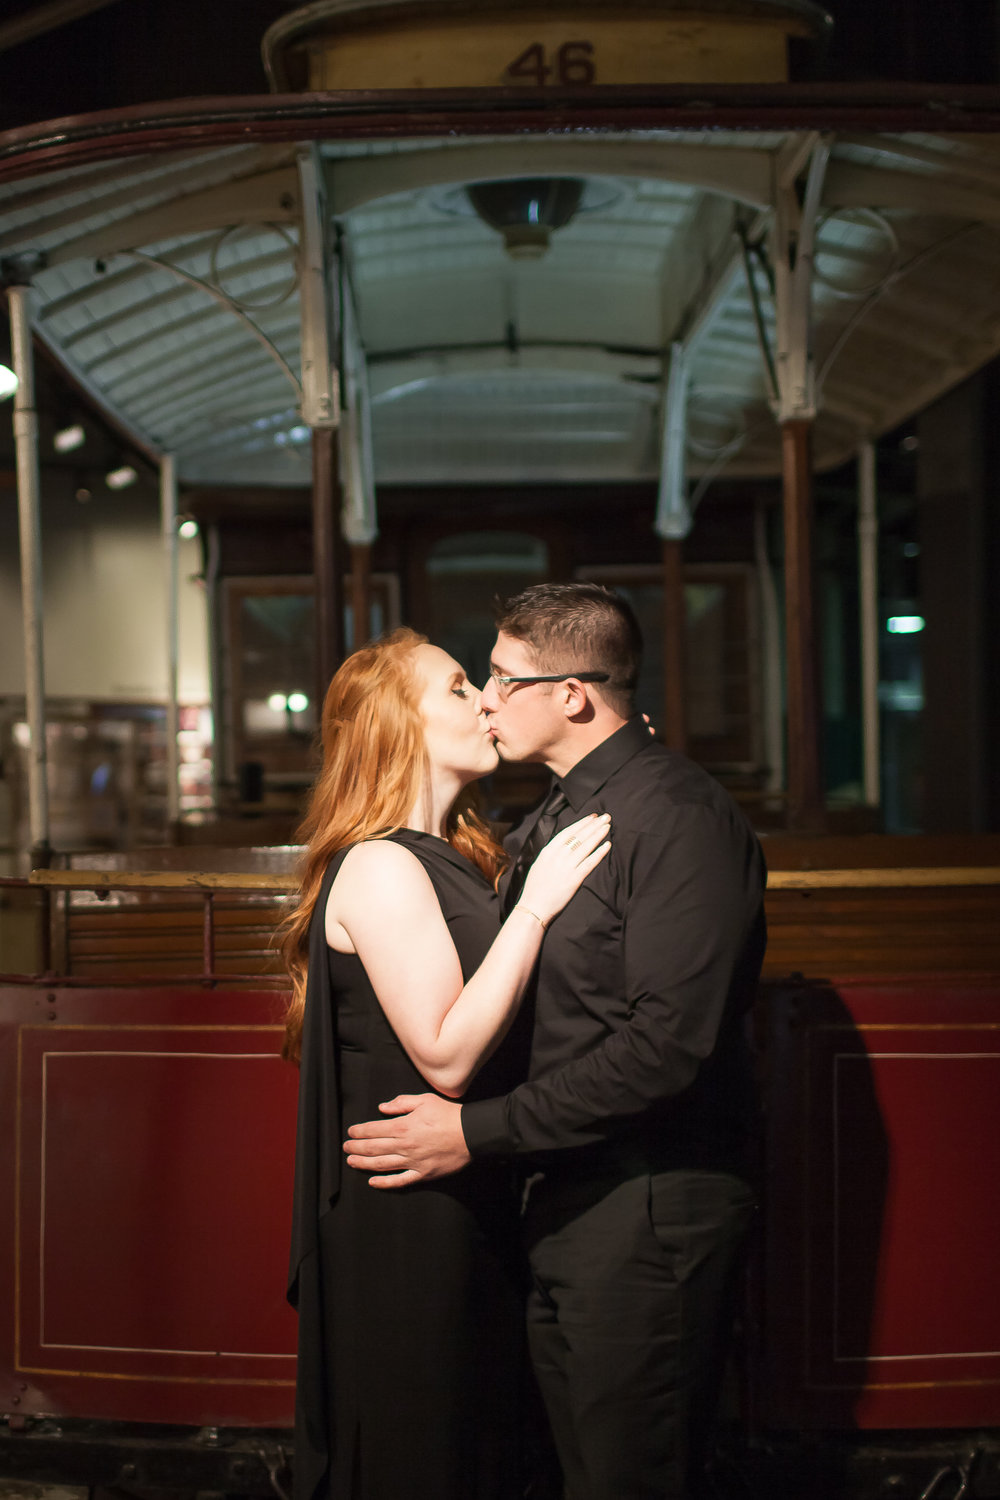 golden date park engagement photos, san francisco cable car museum engagement shoot